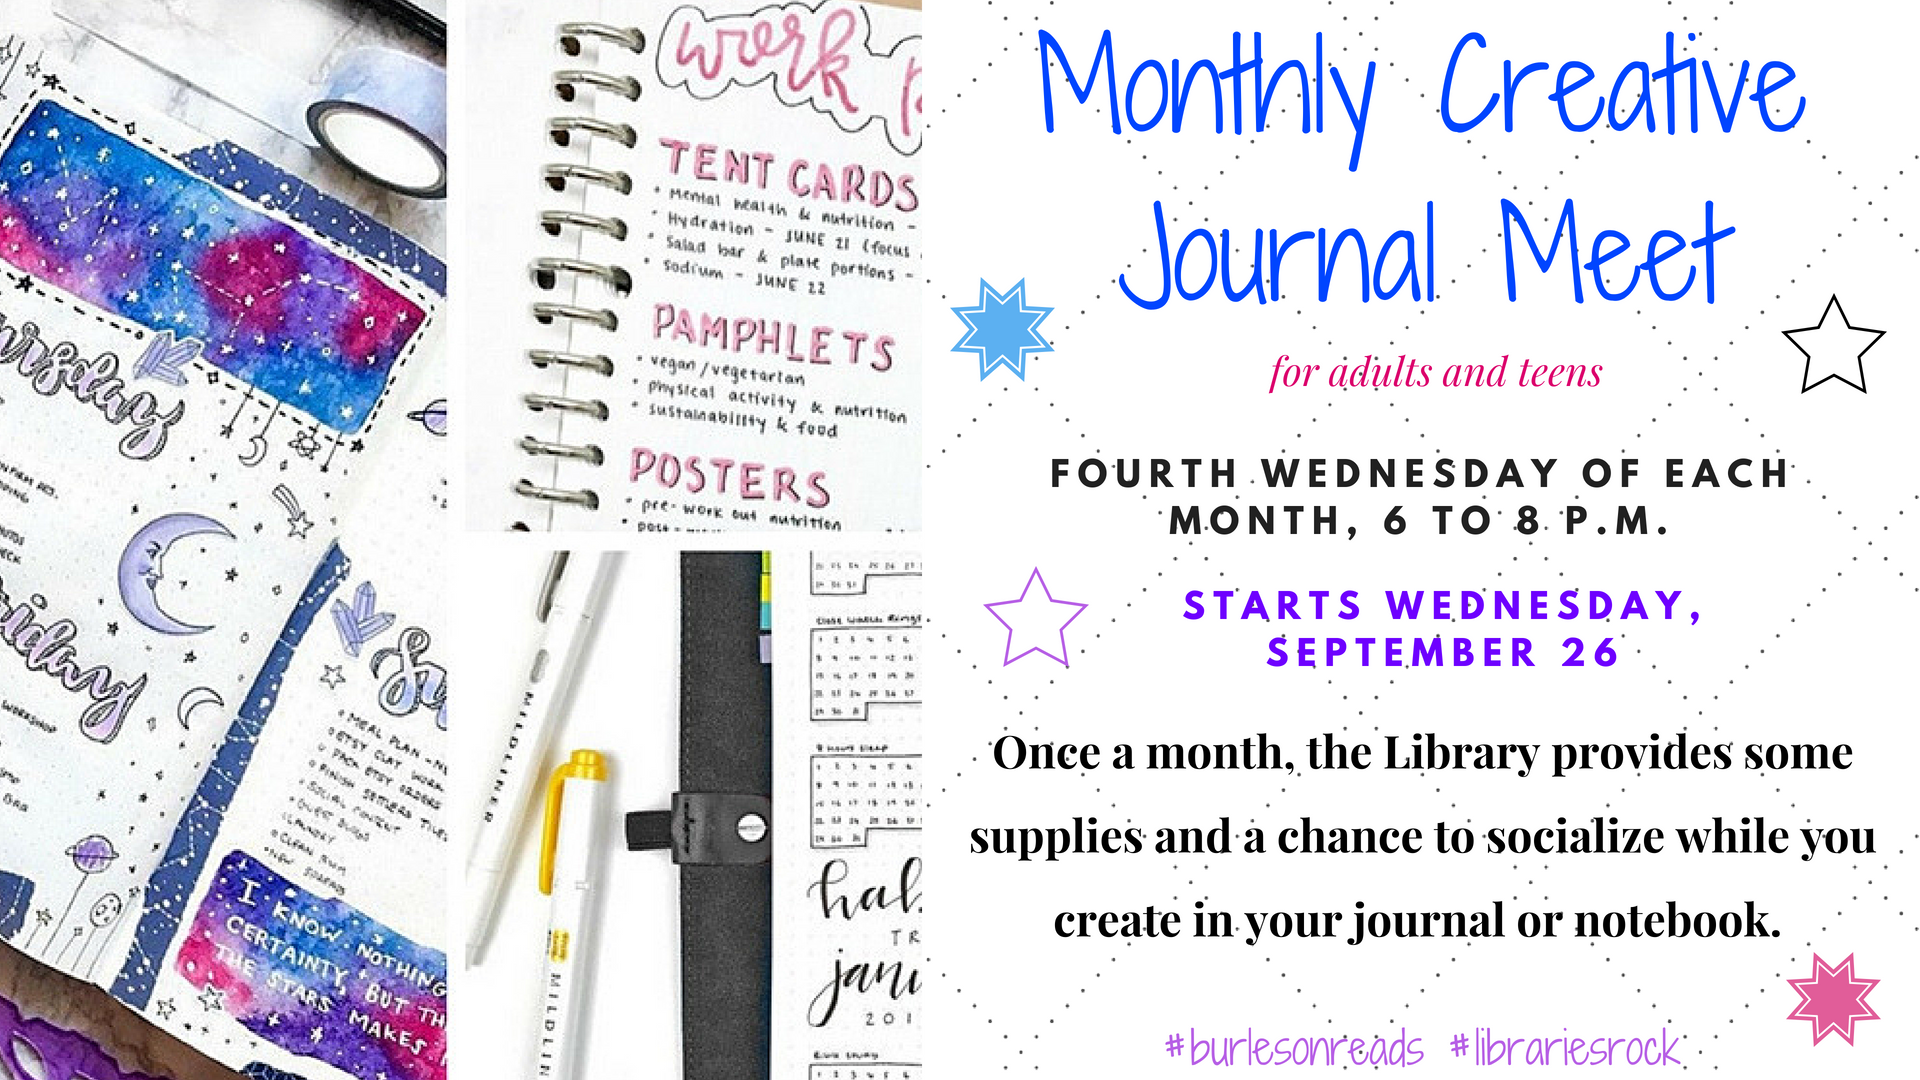 Monthly Creative Journal Meet (1)